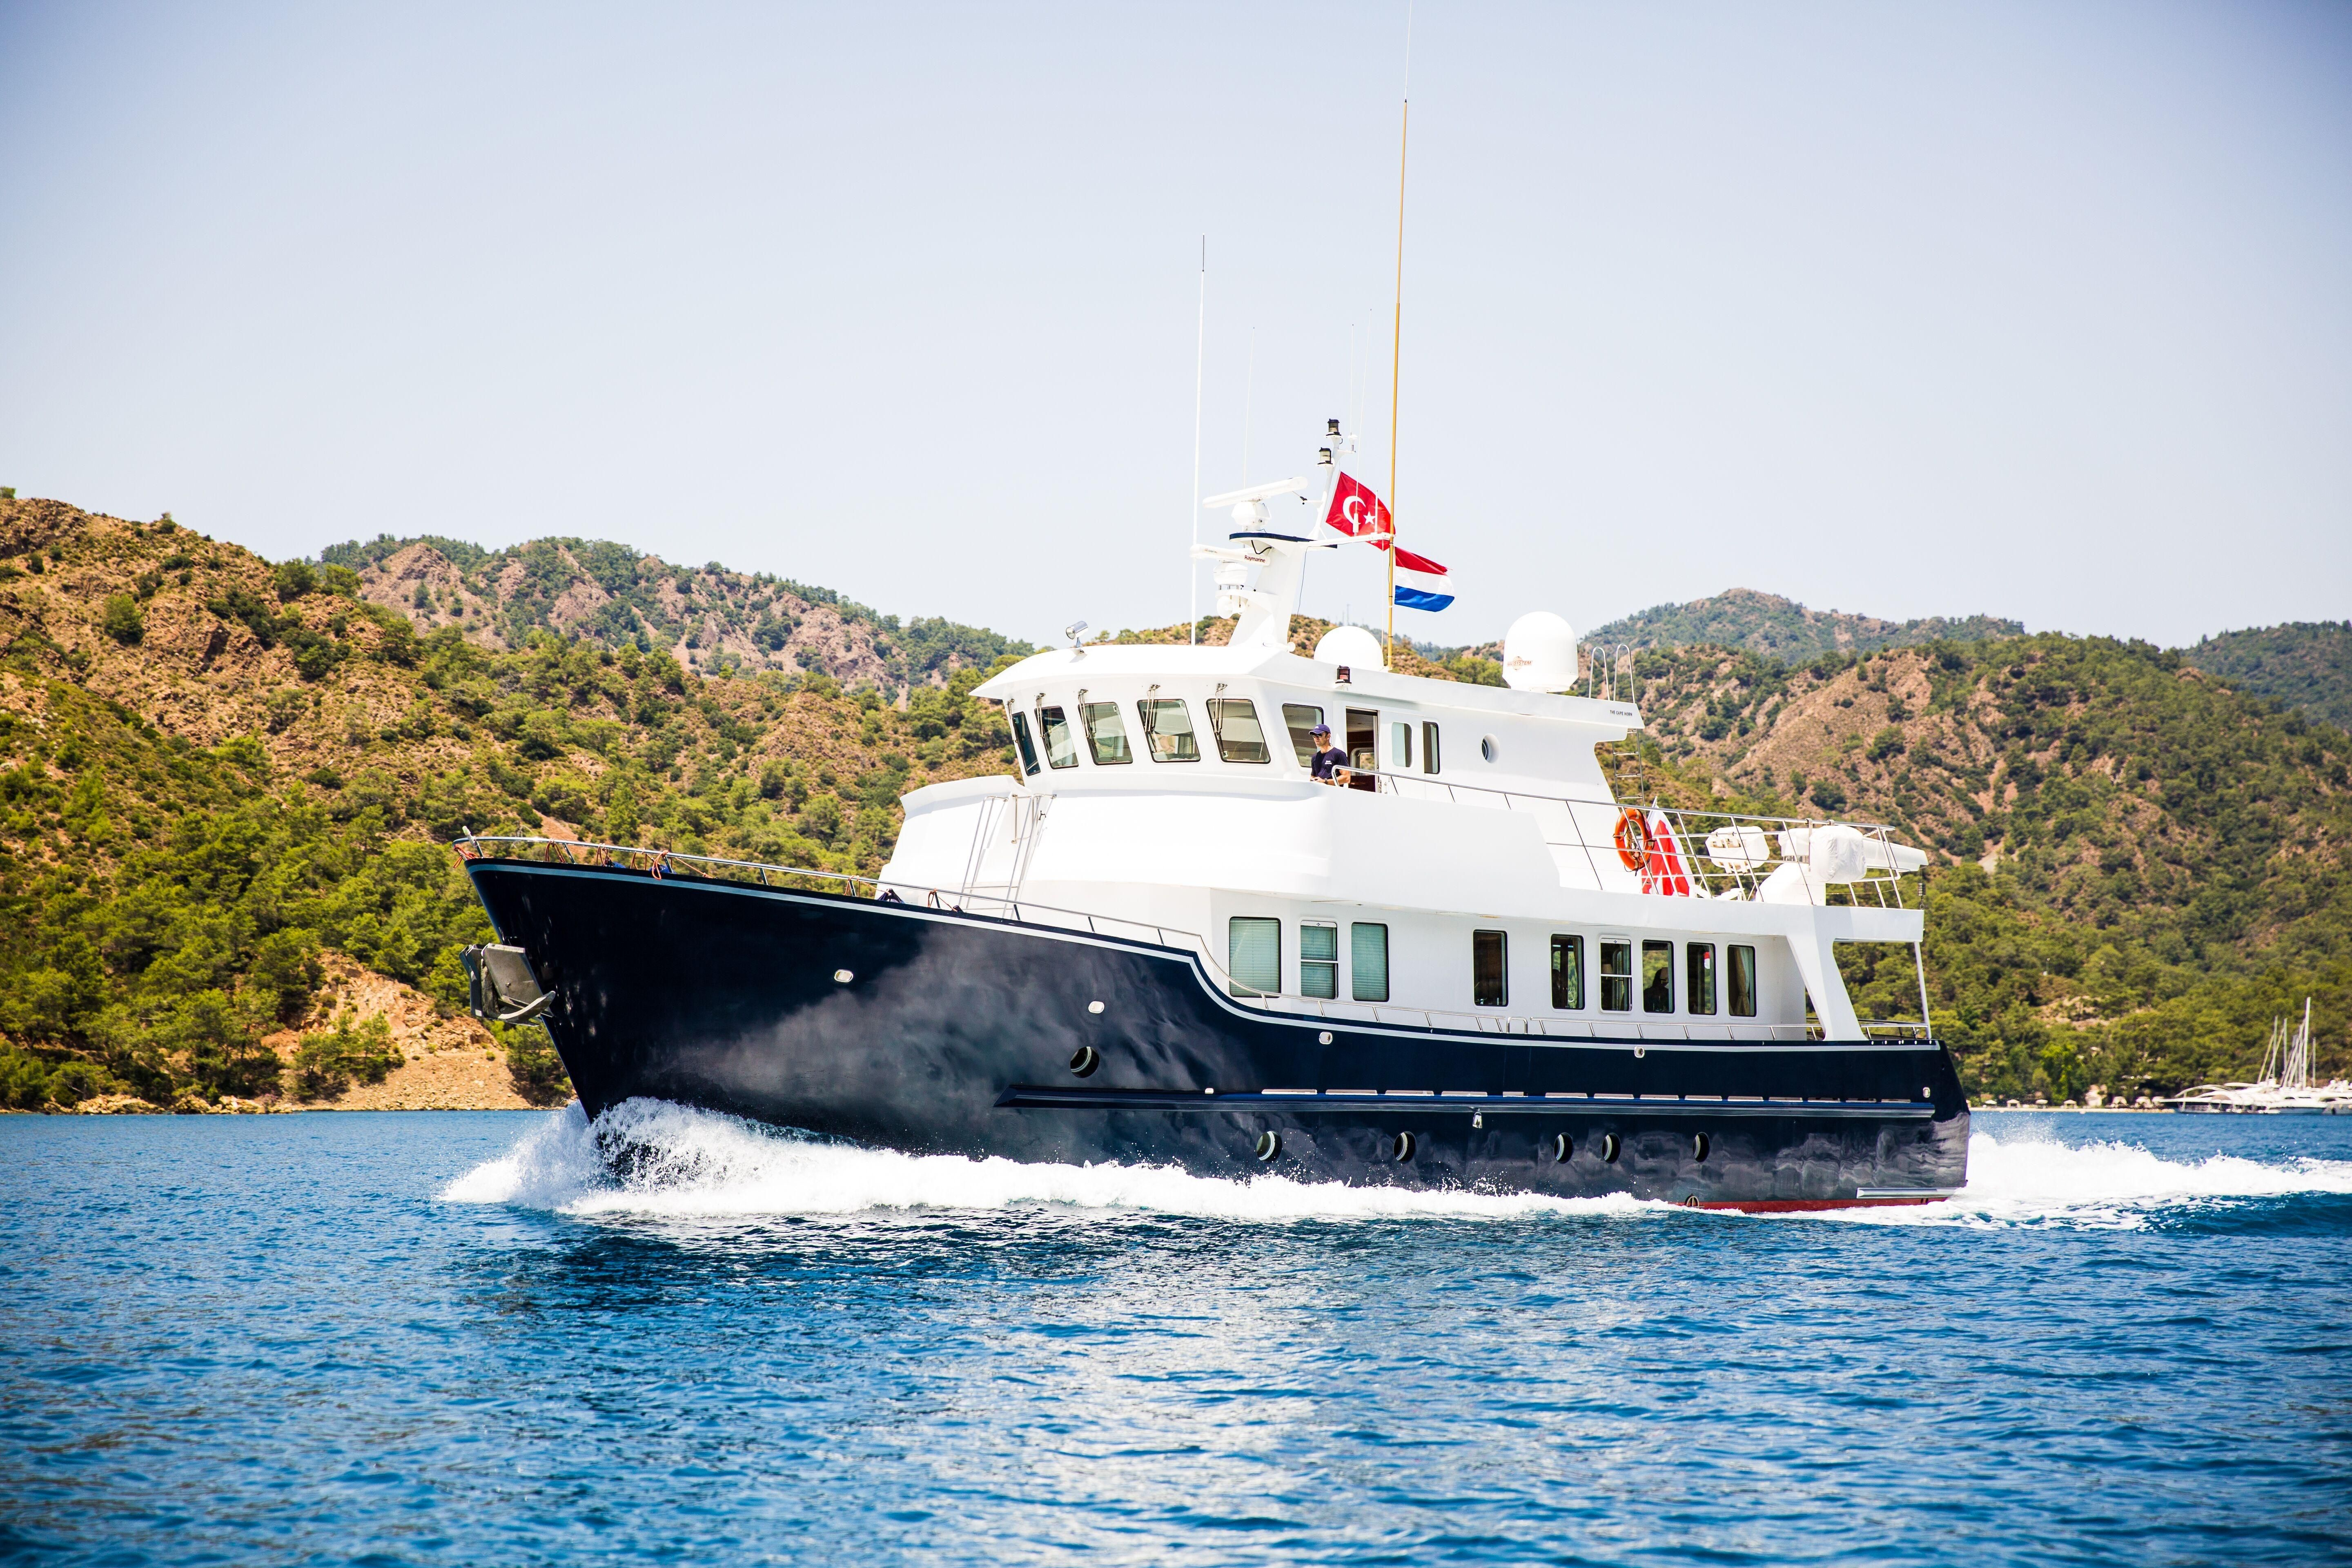 Cape Horn Boats For Sale >> 2001 Cape Horn Trawler Power Boat For Sale - www.yachtworld.com